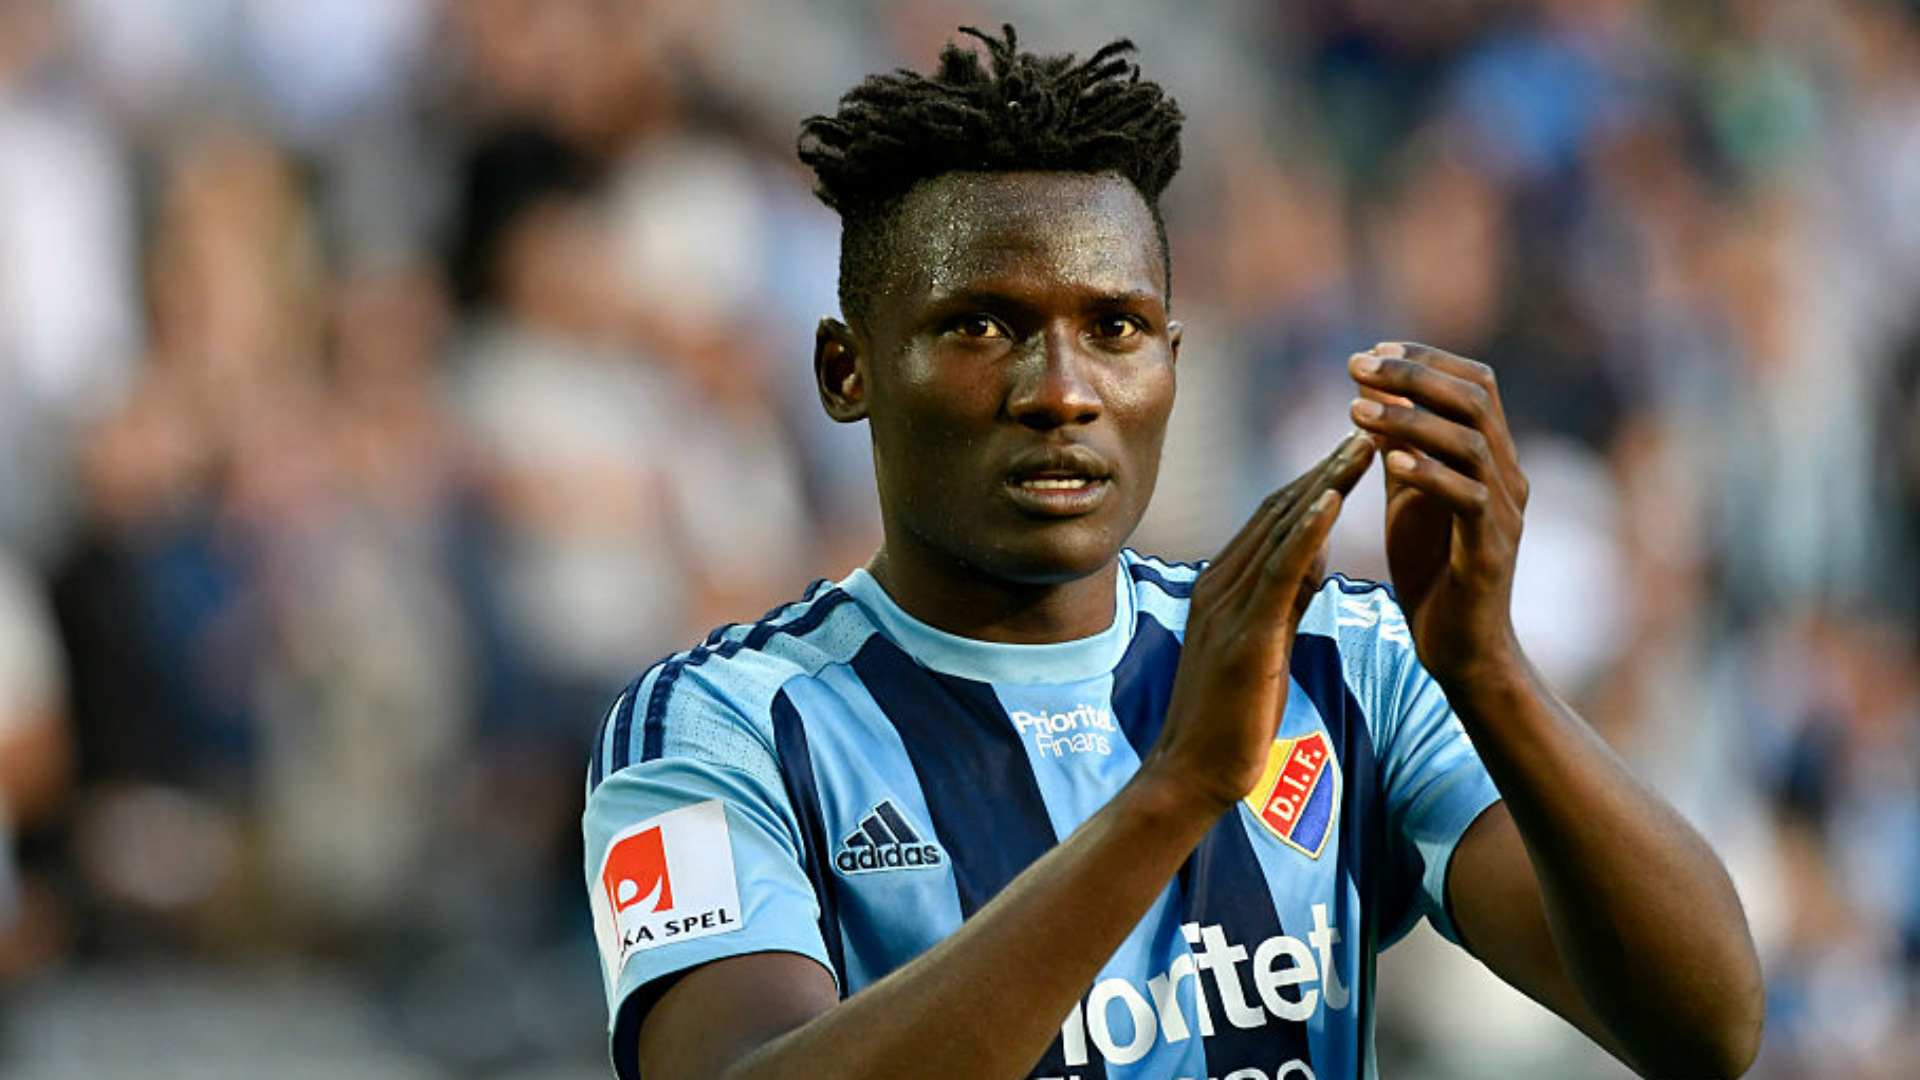 Mixed fortunes for Stars' Olunga and Were